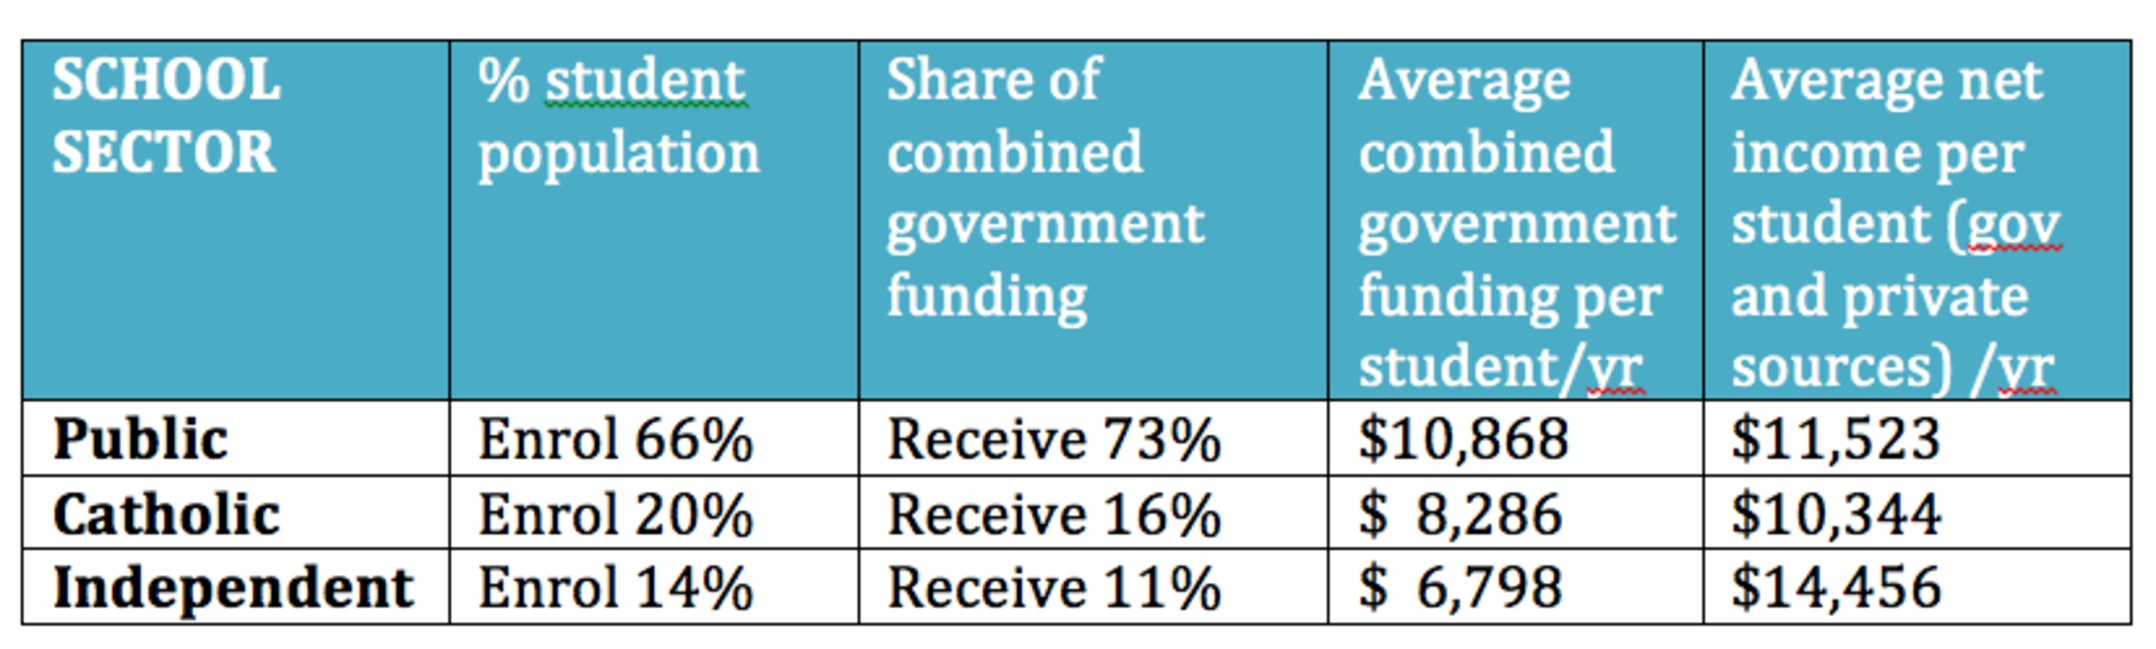 An analysis of government funding for public schools